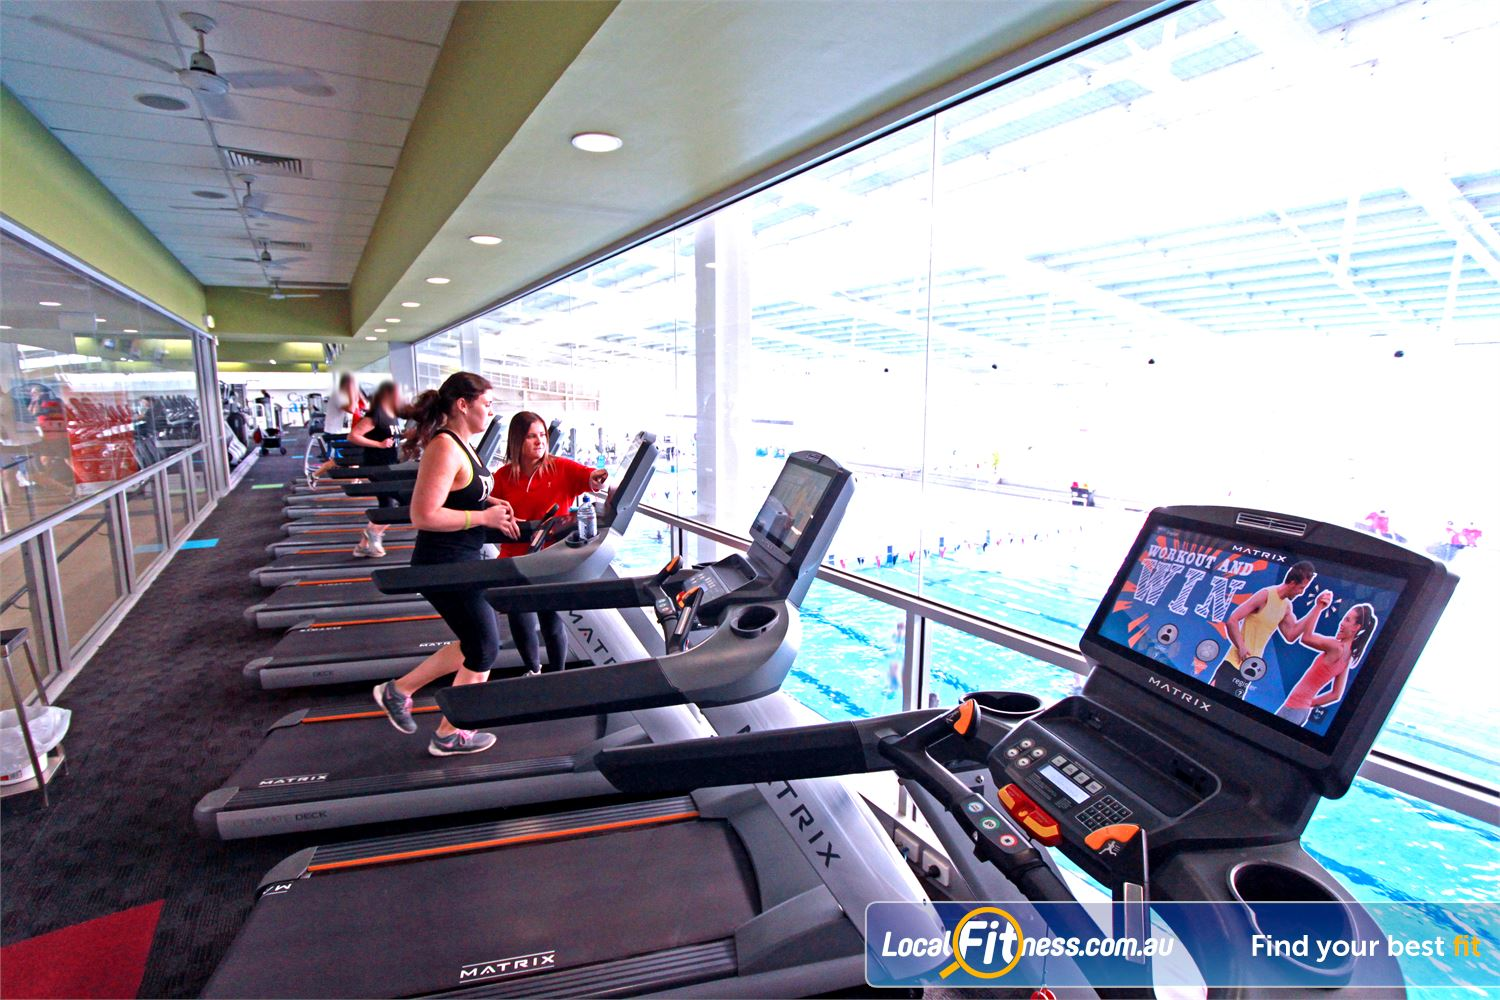 Casey Arc Narre Warren The best cardio views in the south east with the best equipment from Matrix.